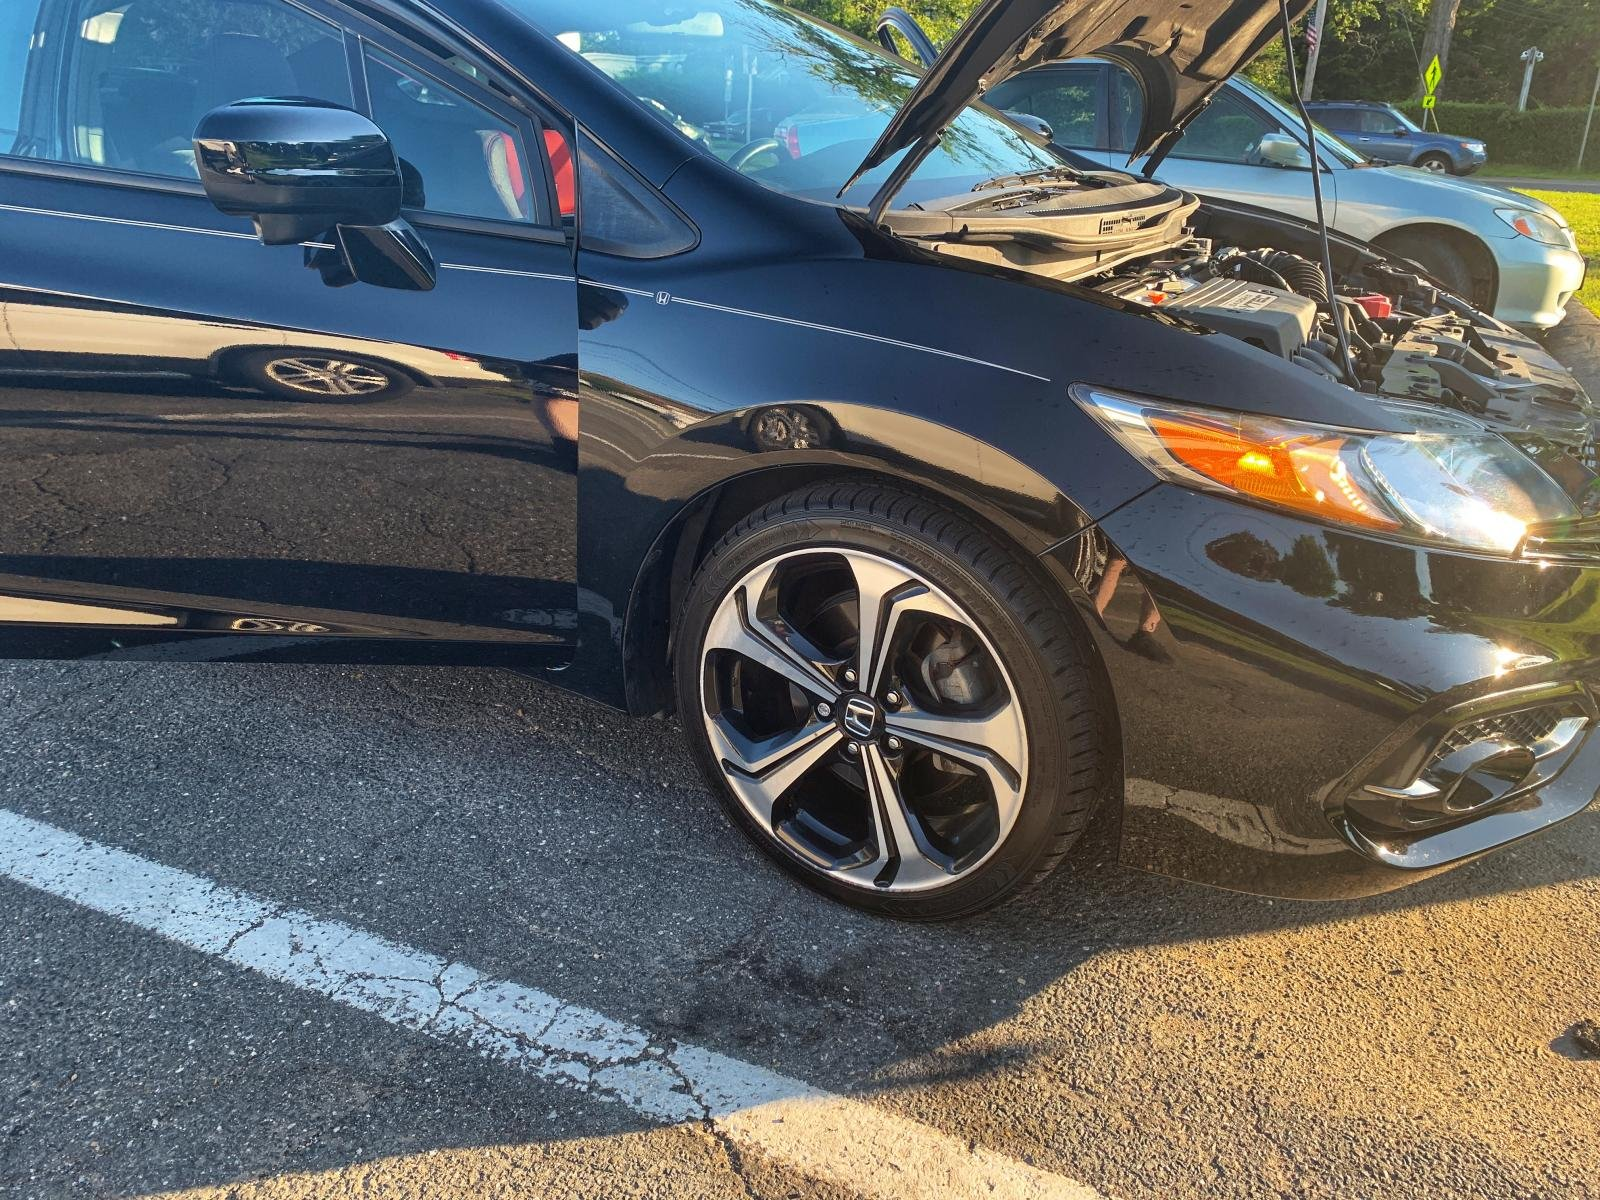 New Member '15 Civic Si Coupe-civic-side.jpg